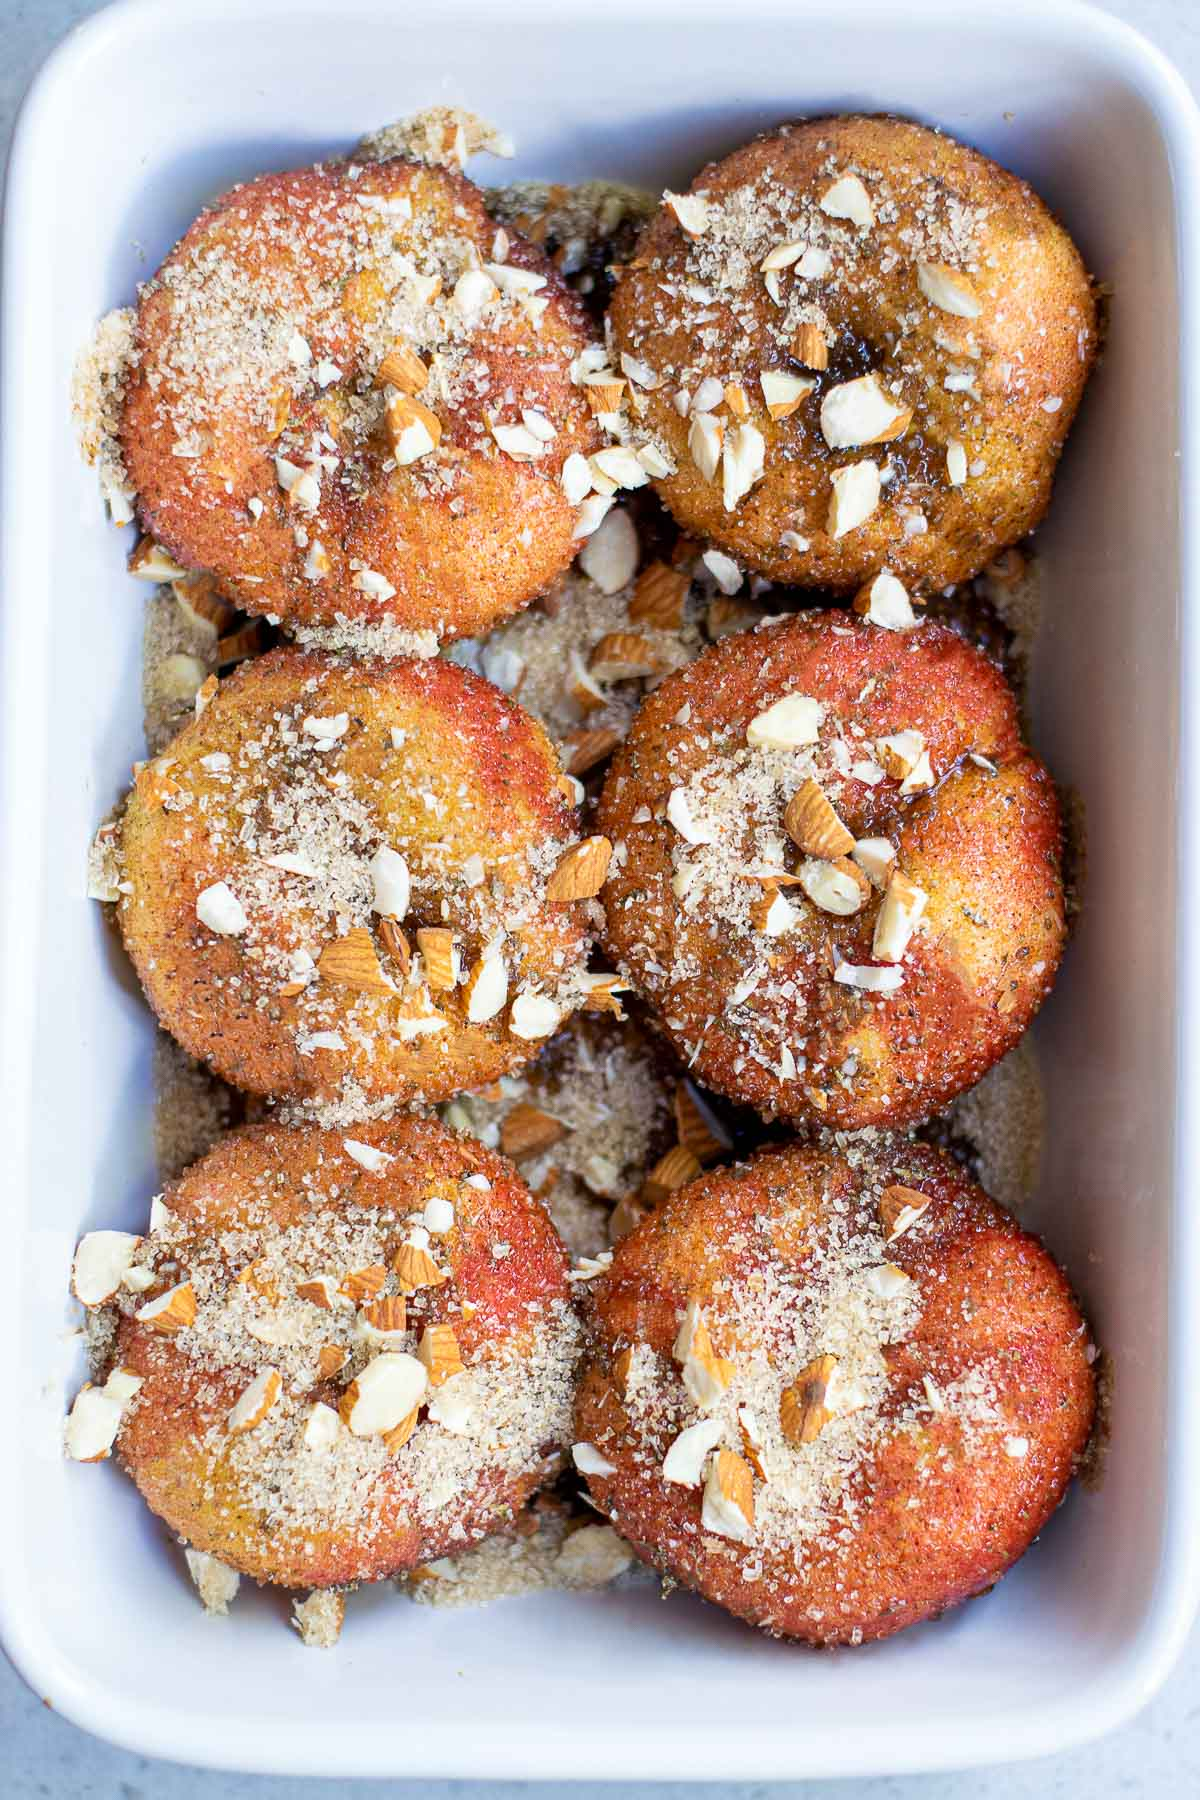 donut peaches in baking pan with nuts